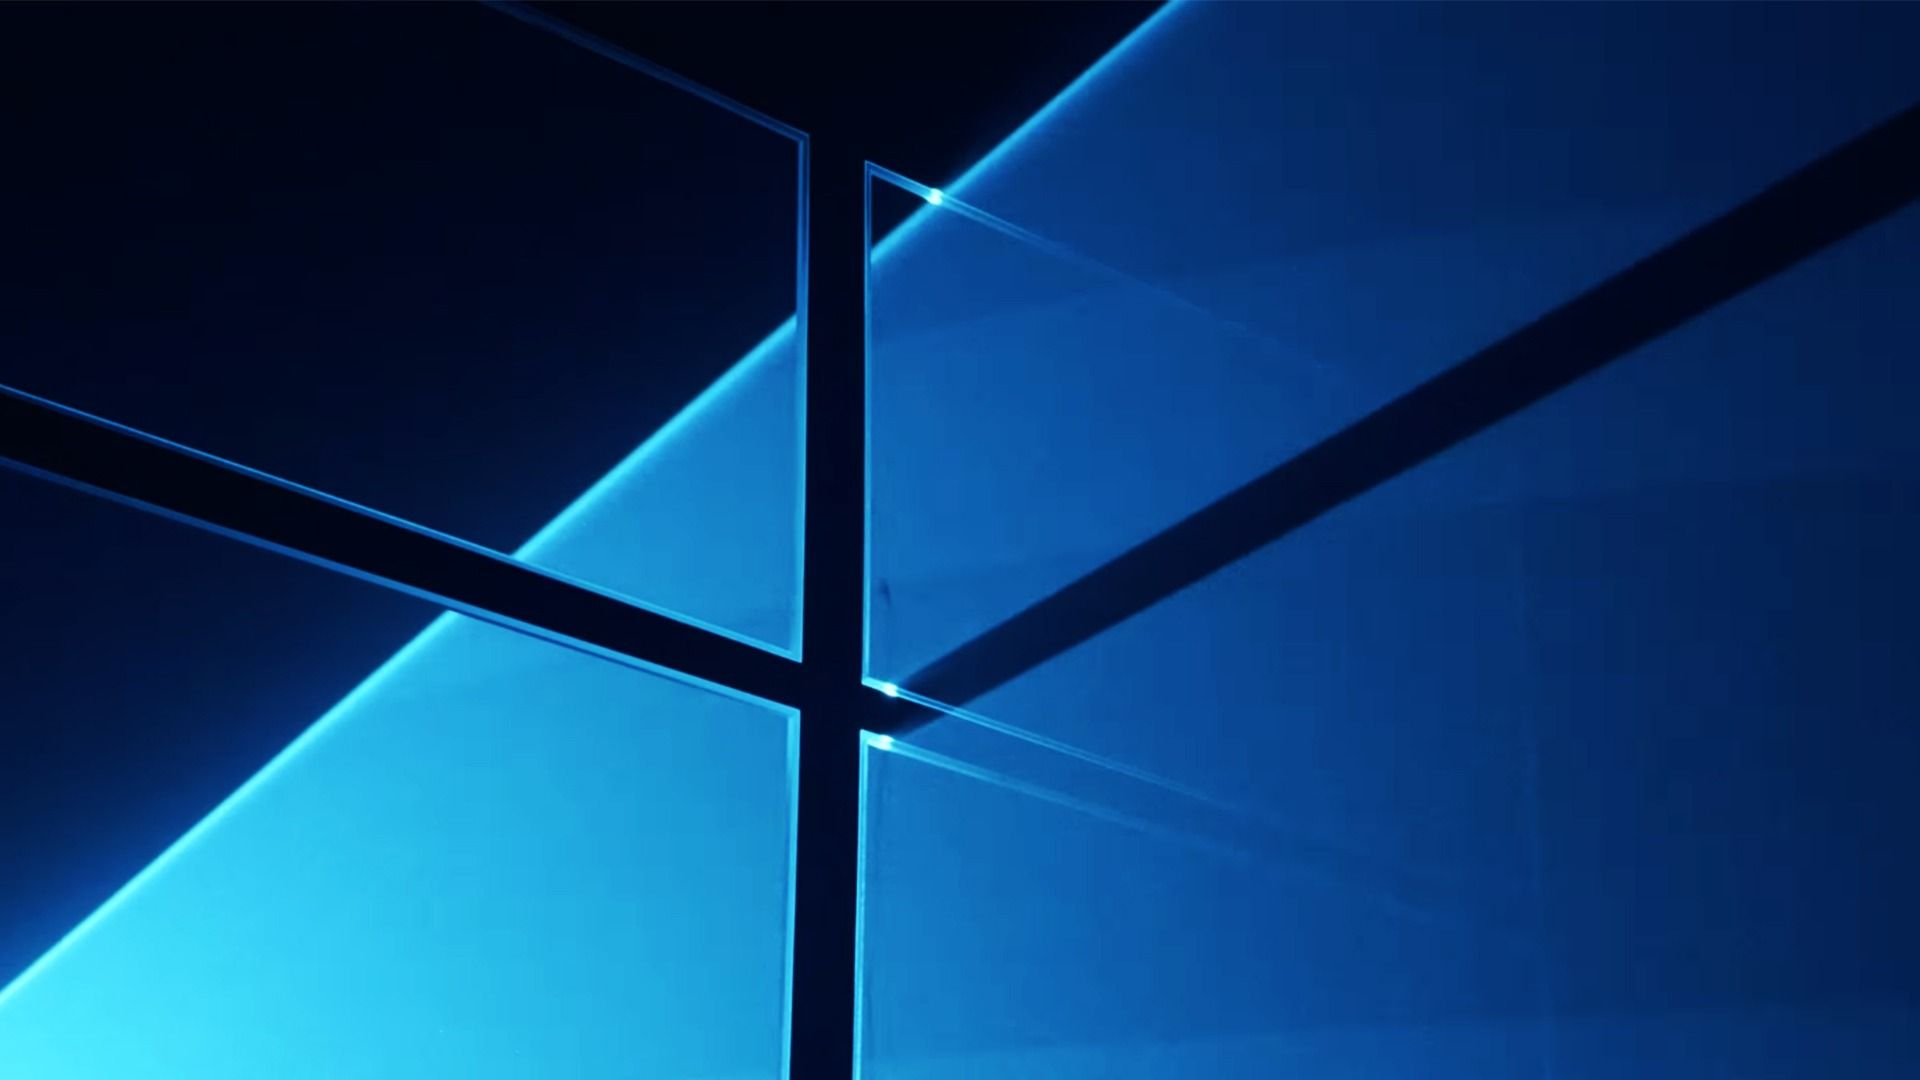 Windows 10 Hd free desktop background